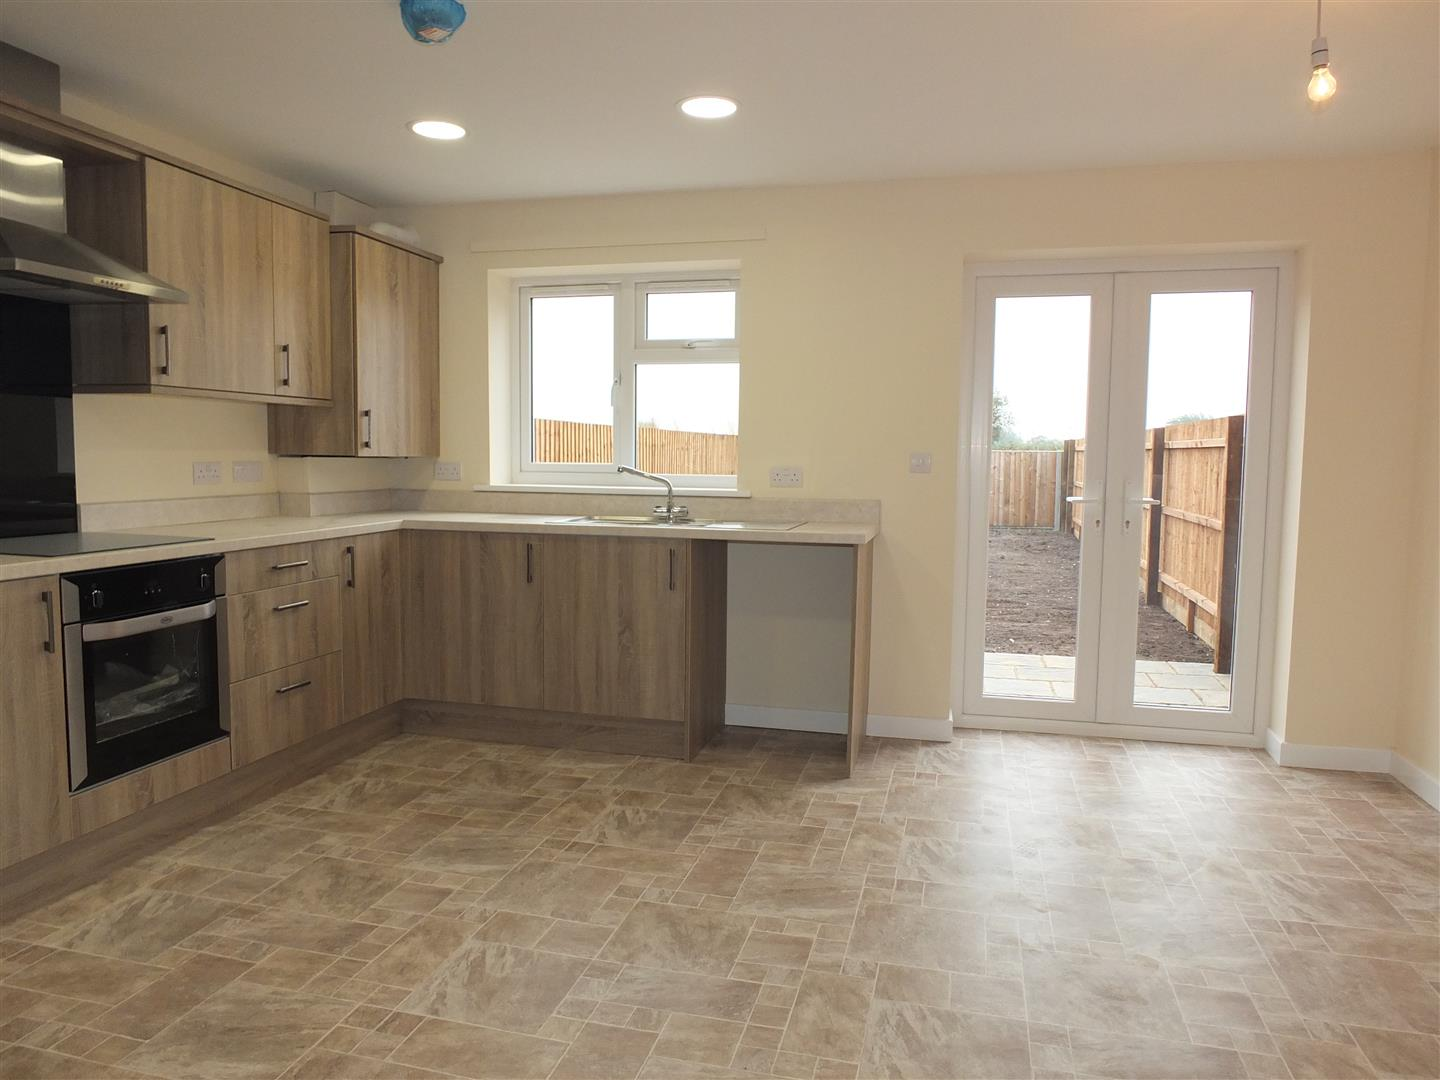 3 bed house to rent in Long Sutton, PE12 9LE 3